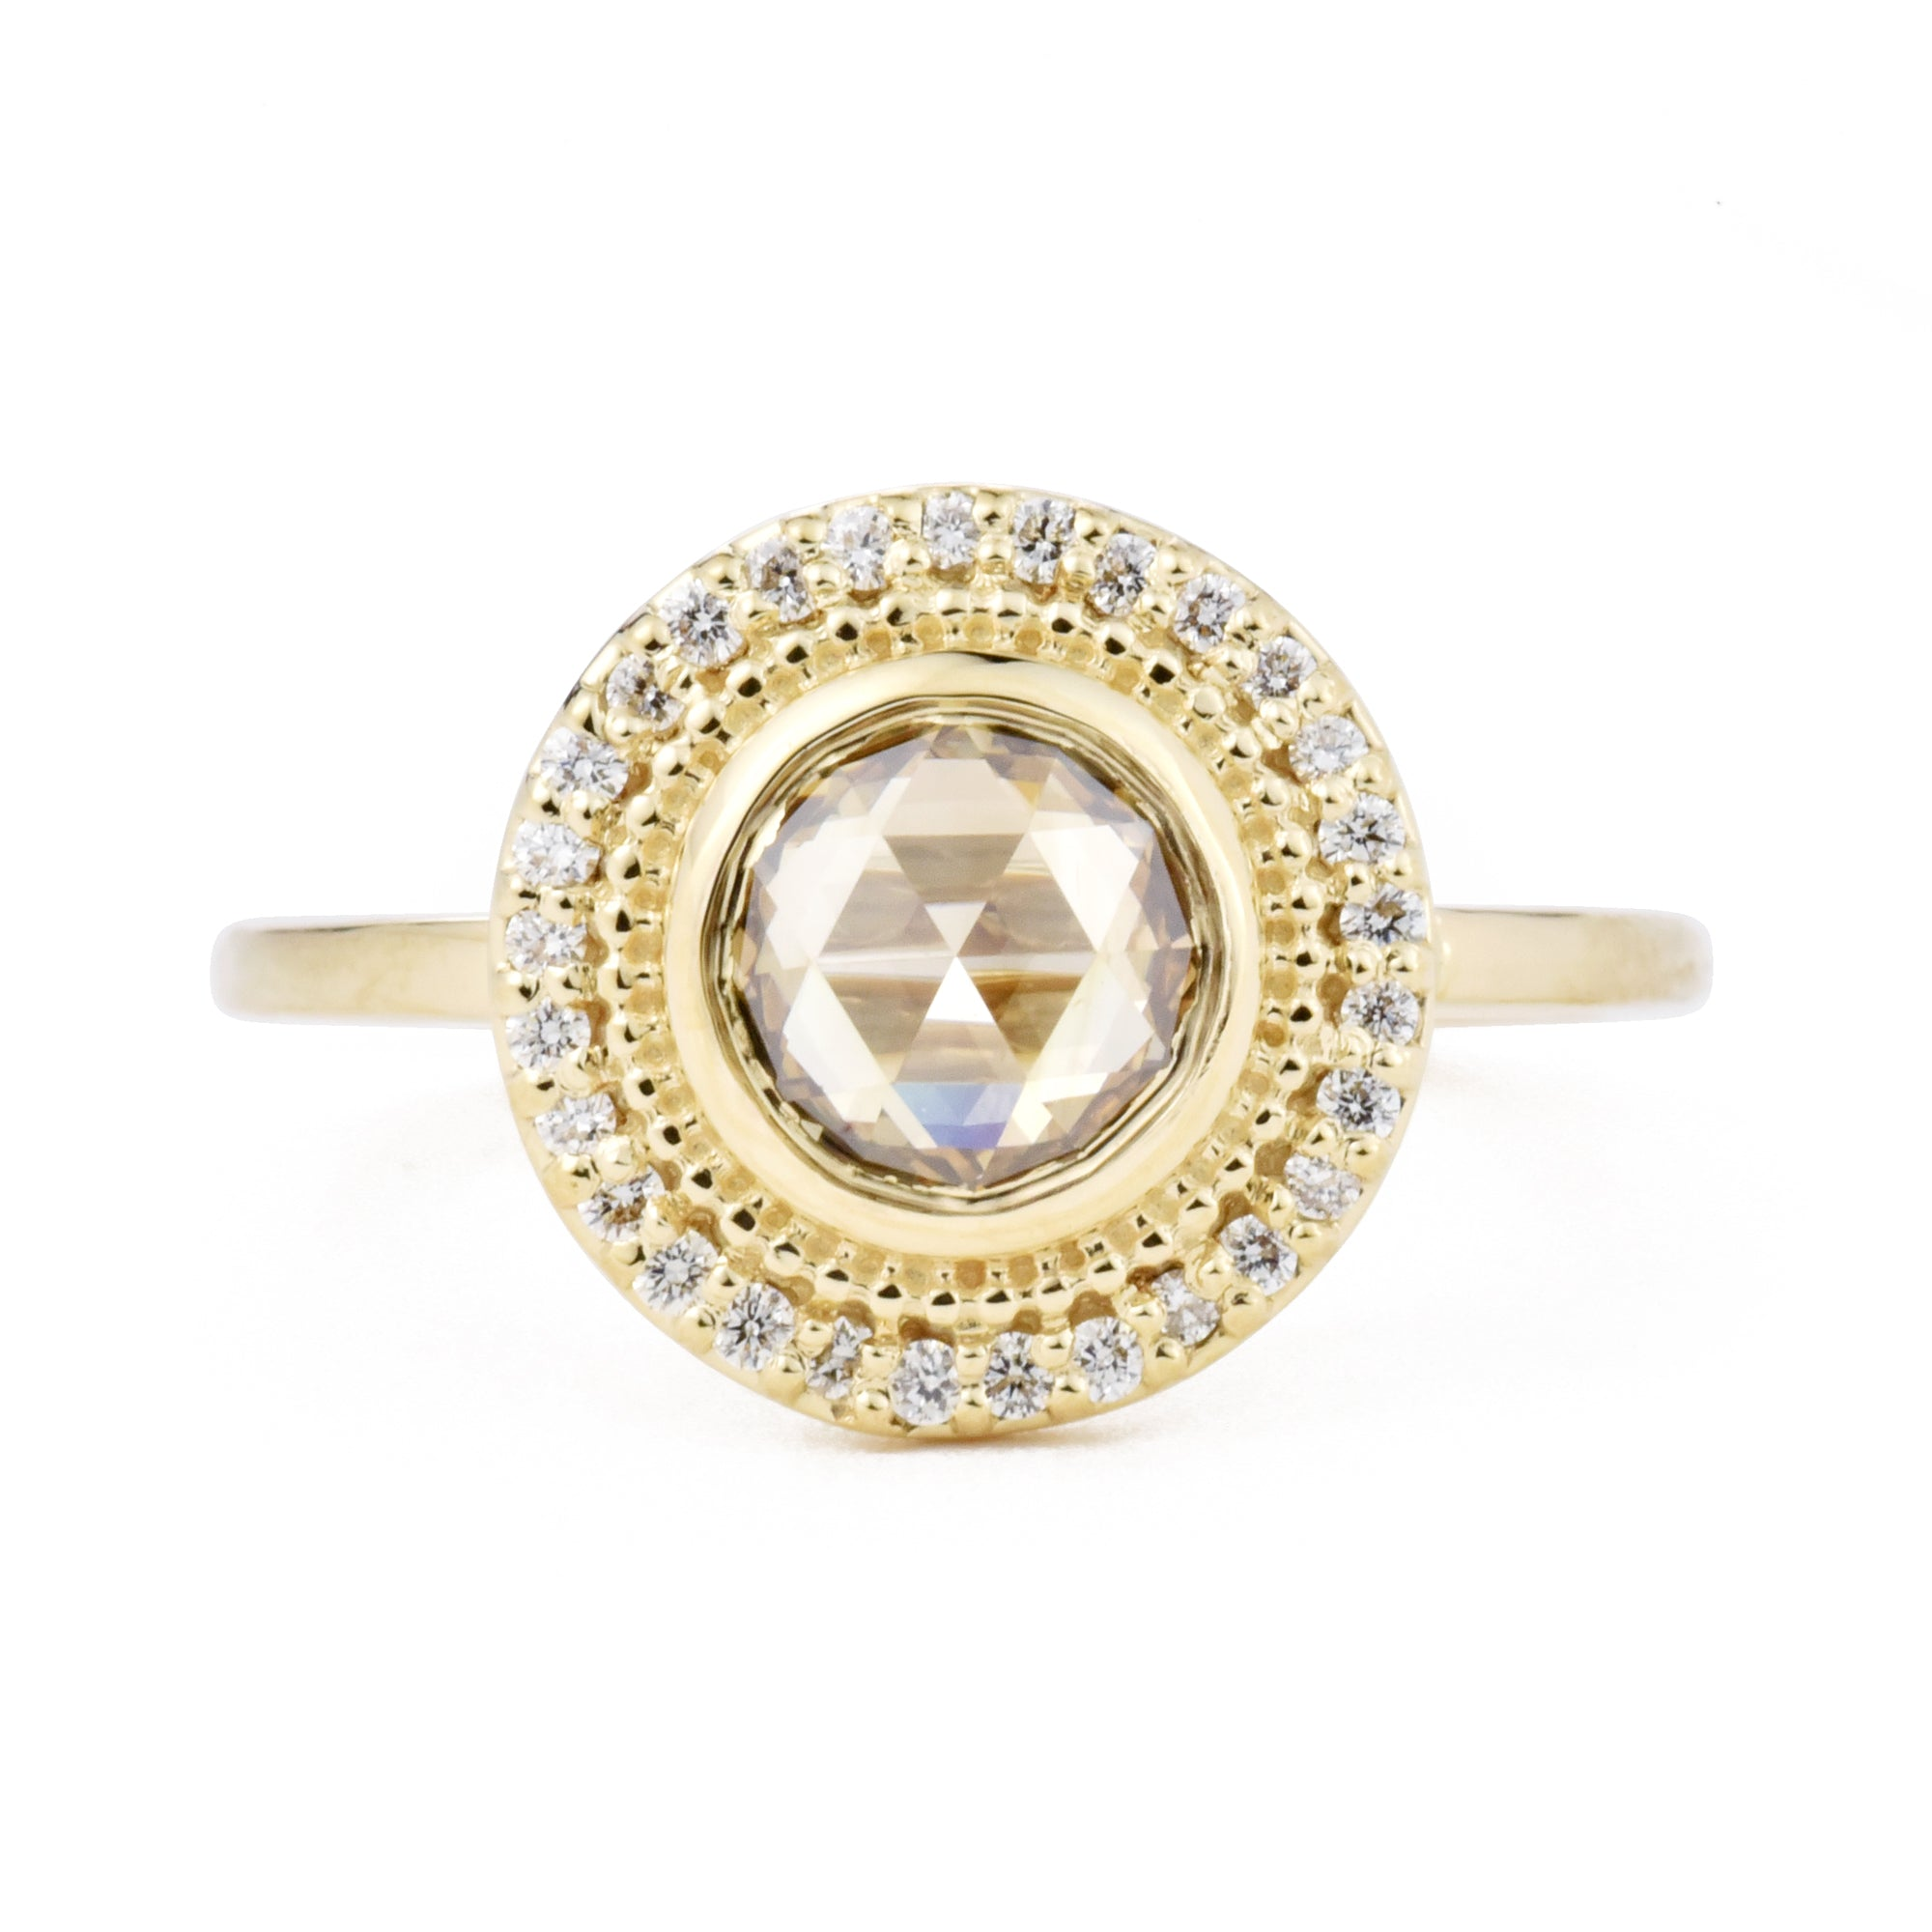 Reserved - Selena Champagne Rose Cut Diamond Ring